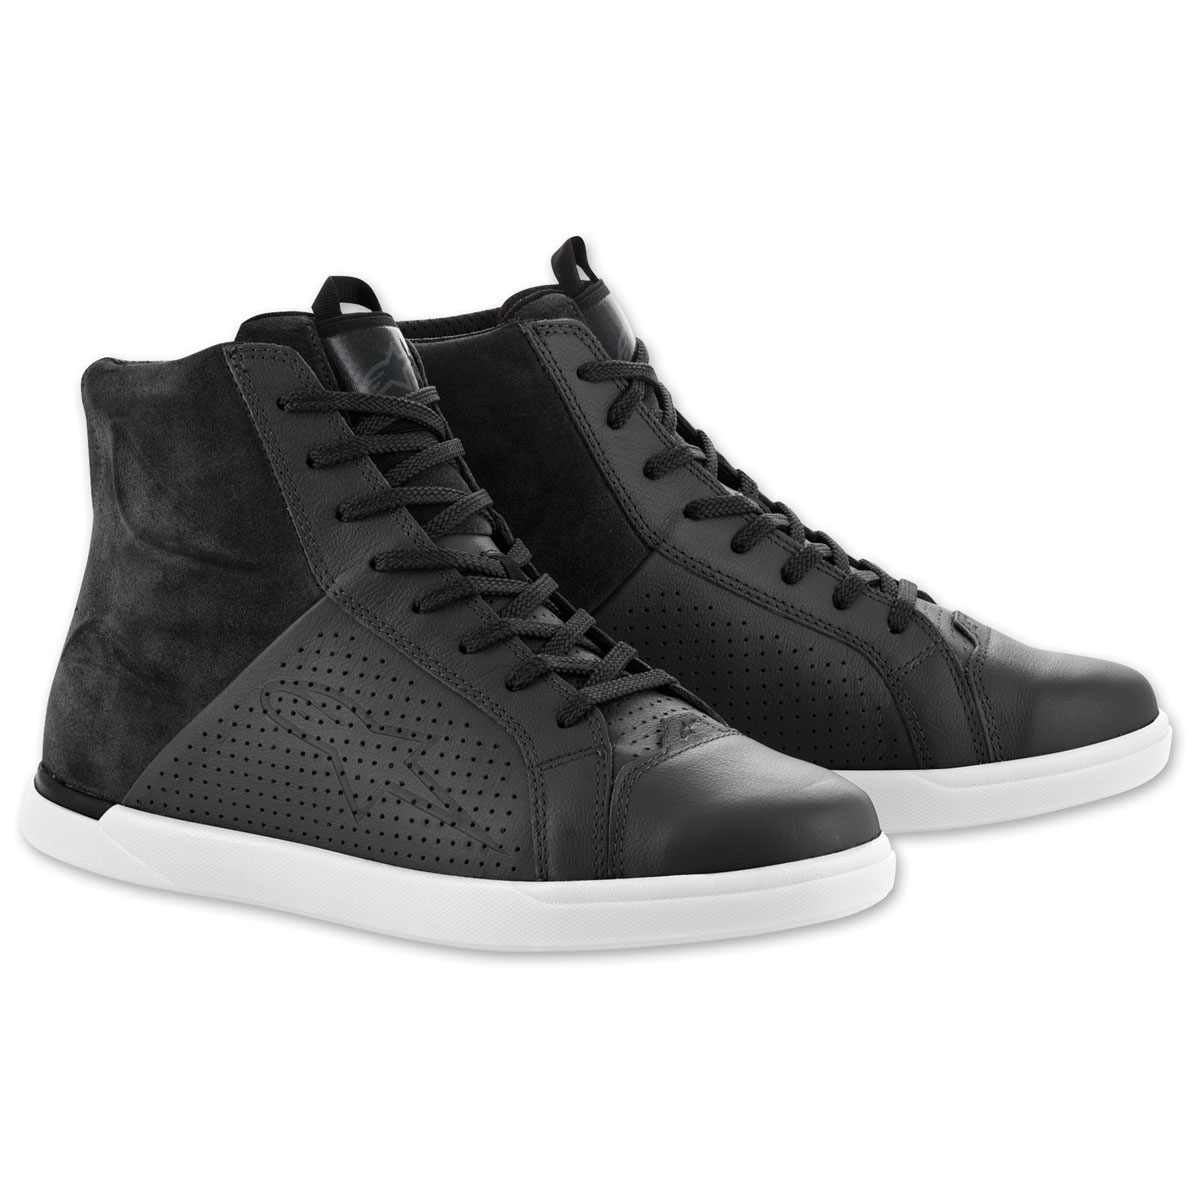 Alpinestars Men's Jam Air Black/Black Shoes